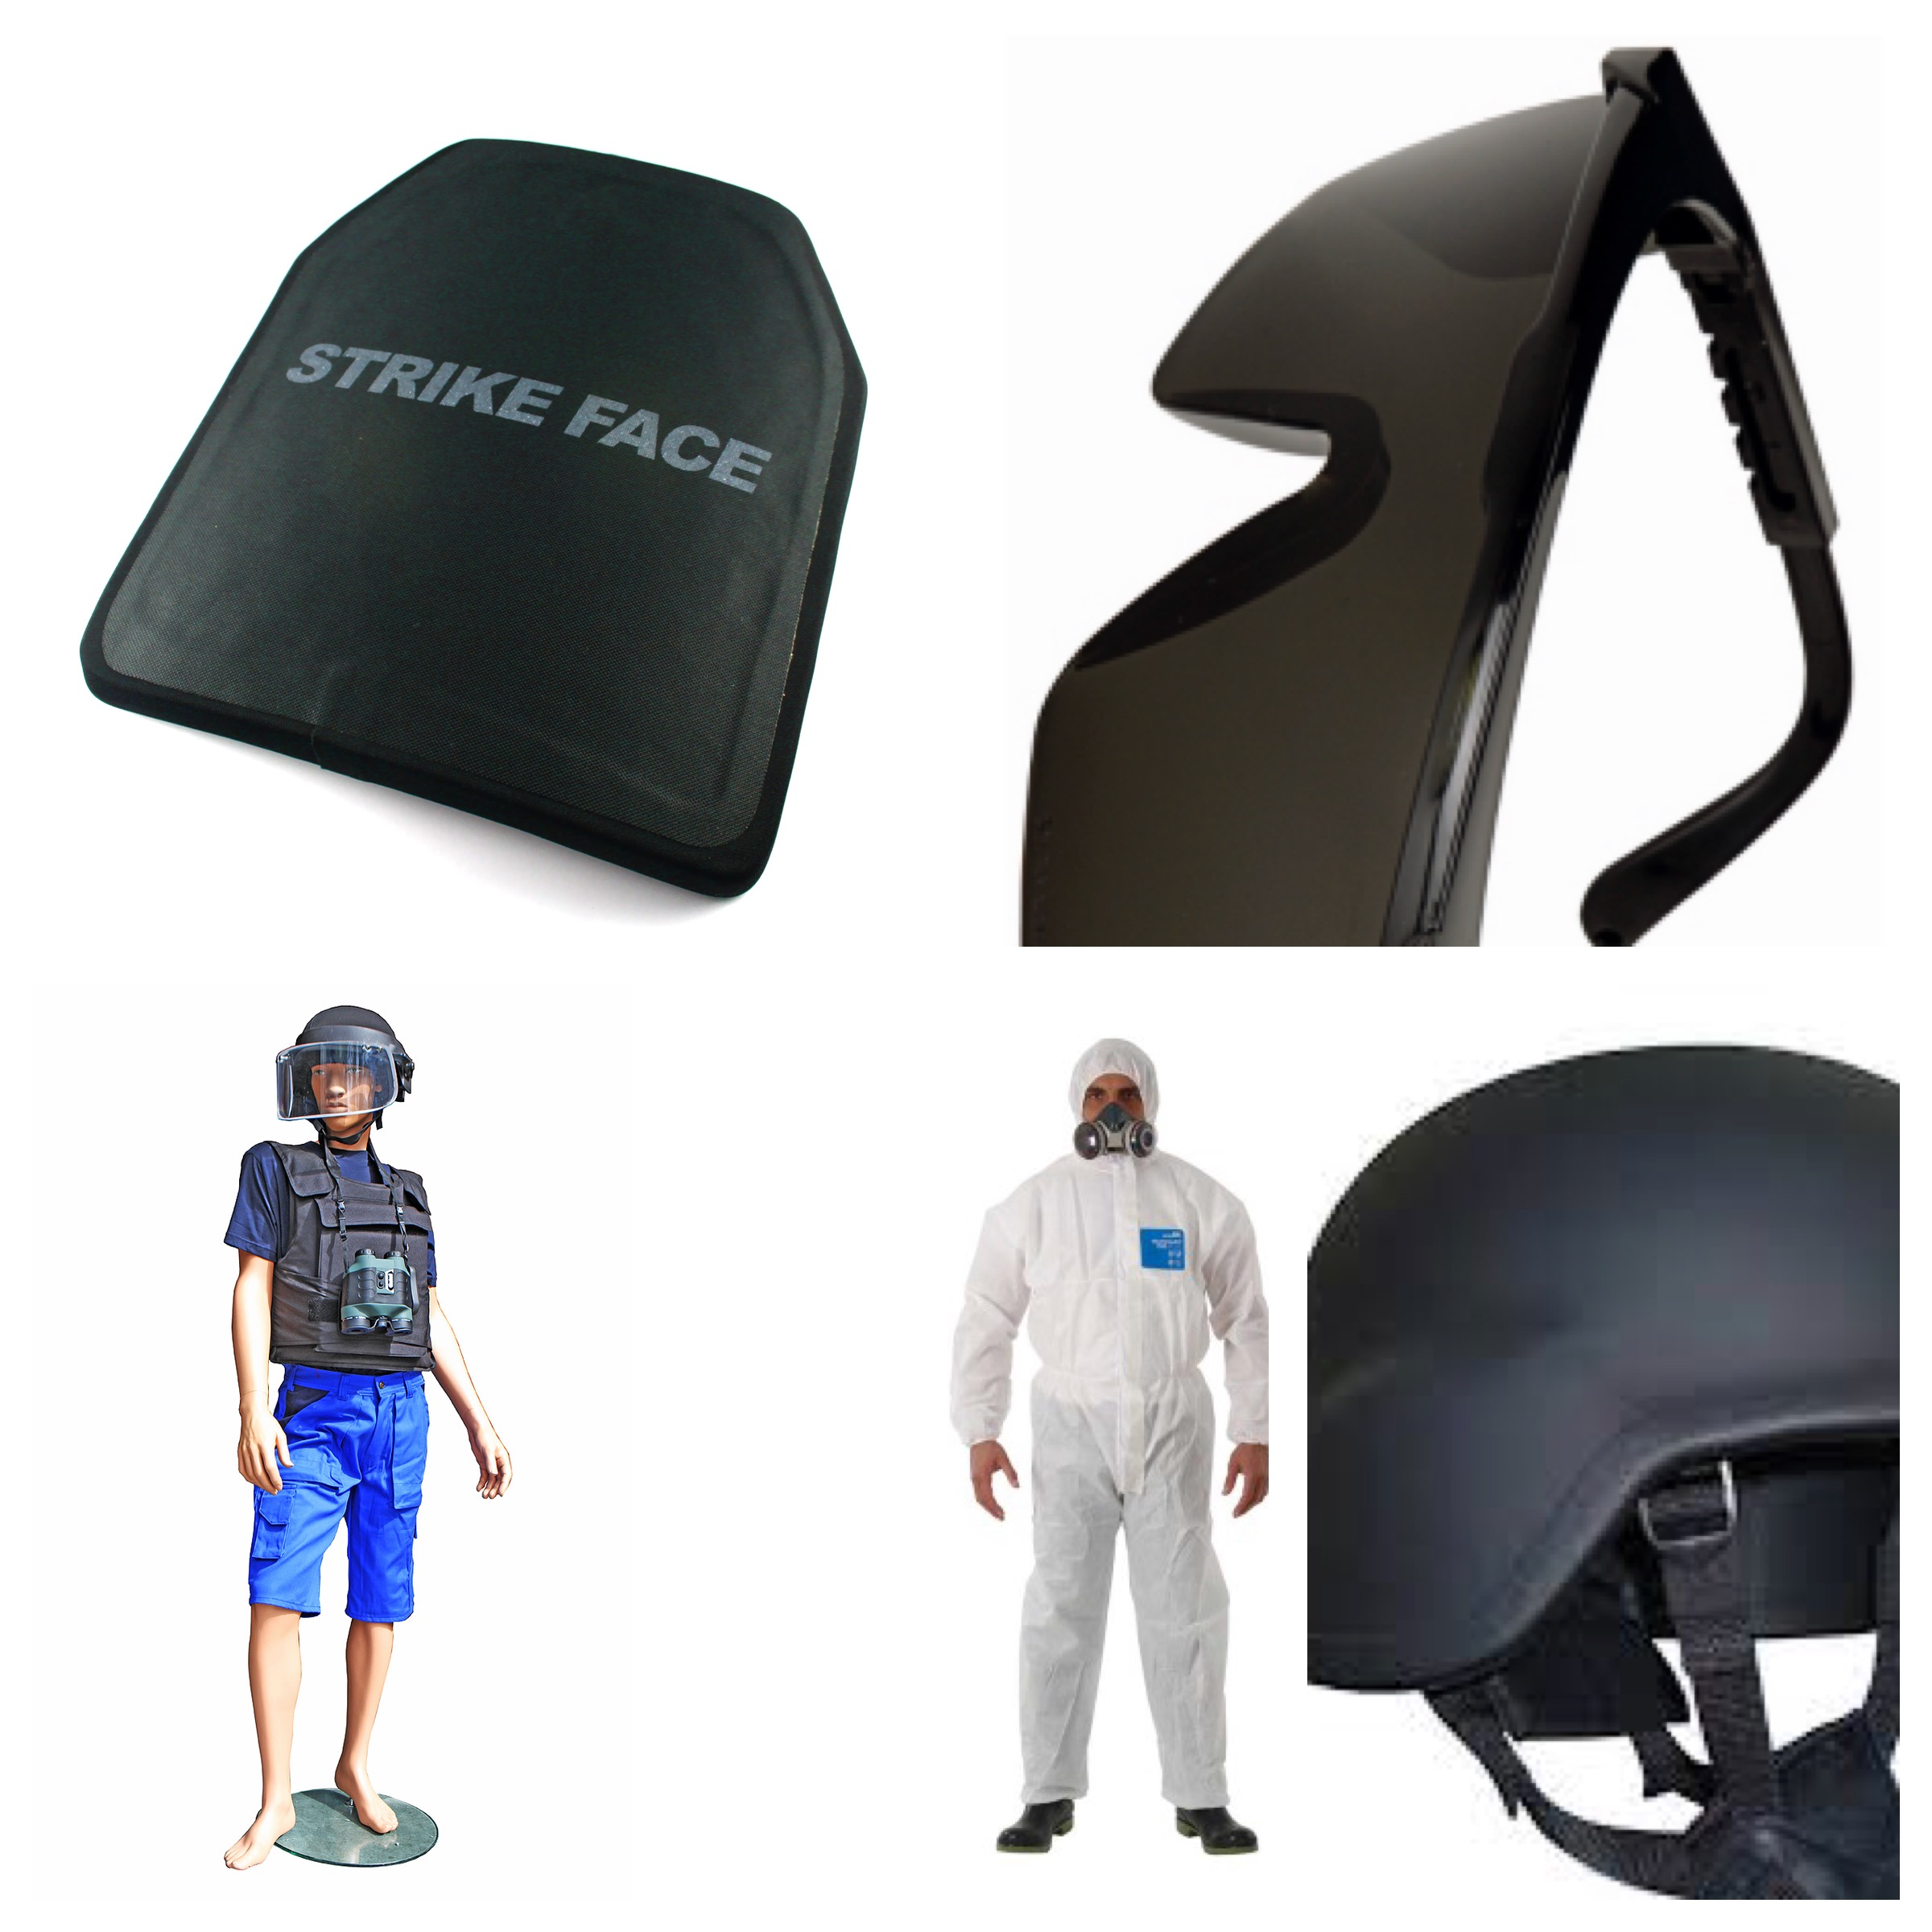 31 Safety Protective Gear